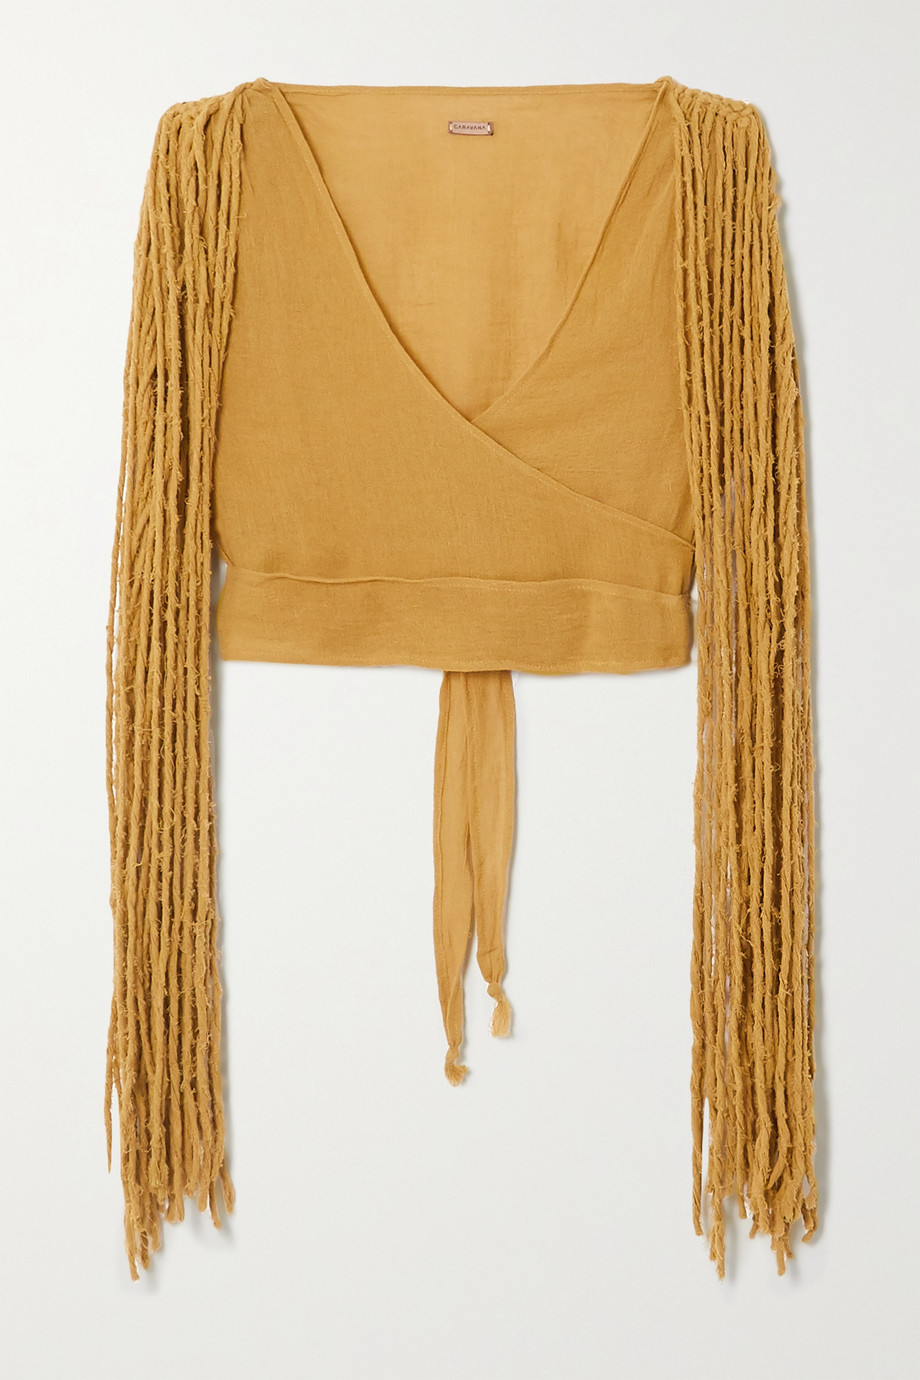 Caravana + NET SUSTAIN Yaxa fringed cotton-gauze top